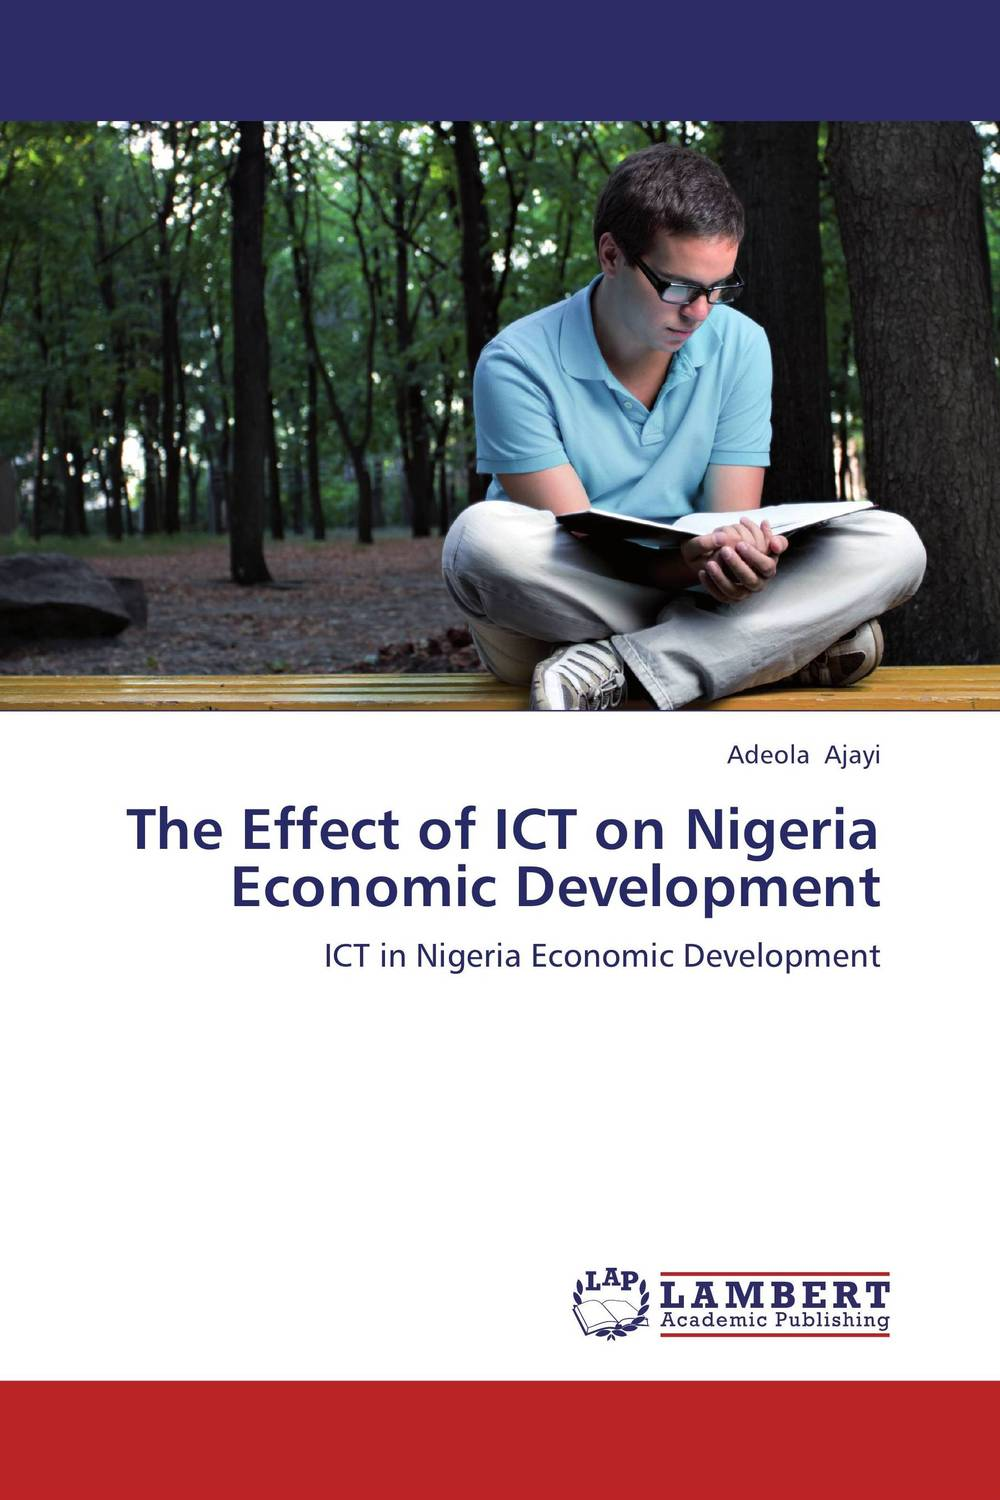 The Effect of ICT on Nigeria Economic Development economic growth in nigeria